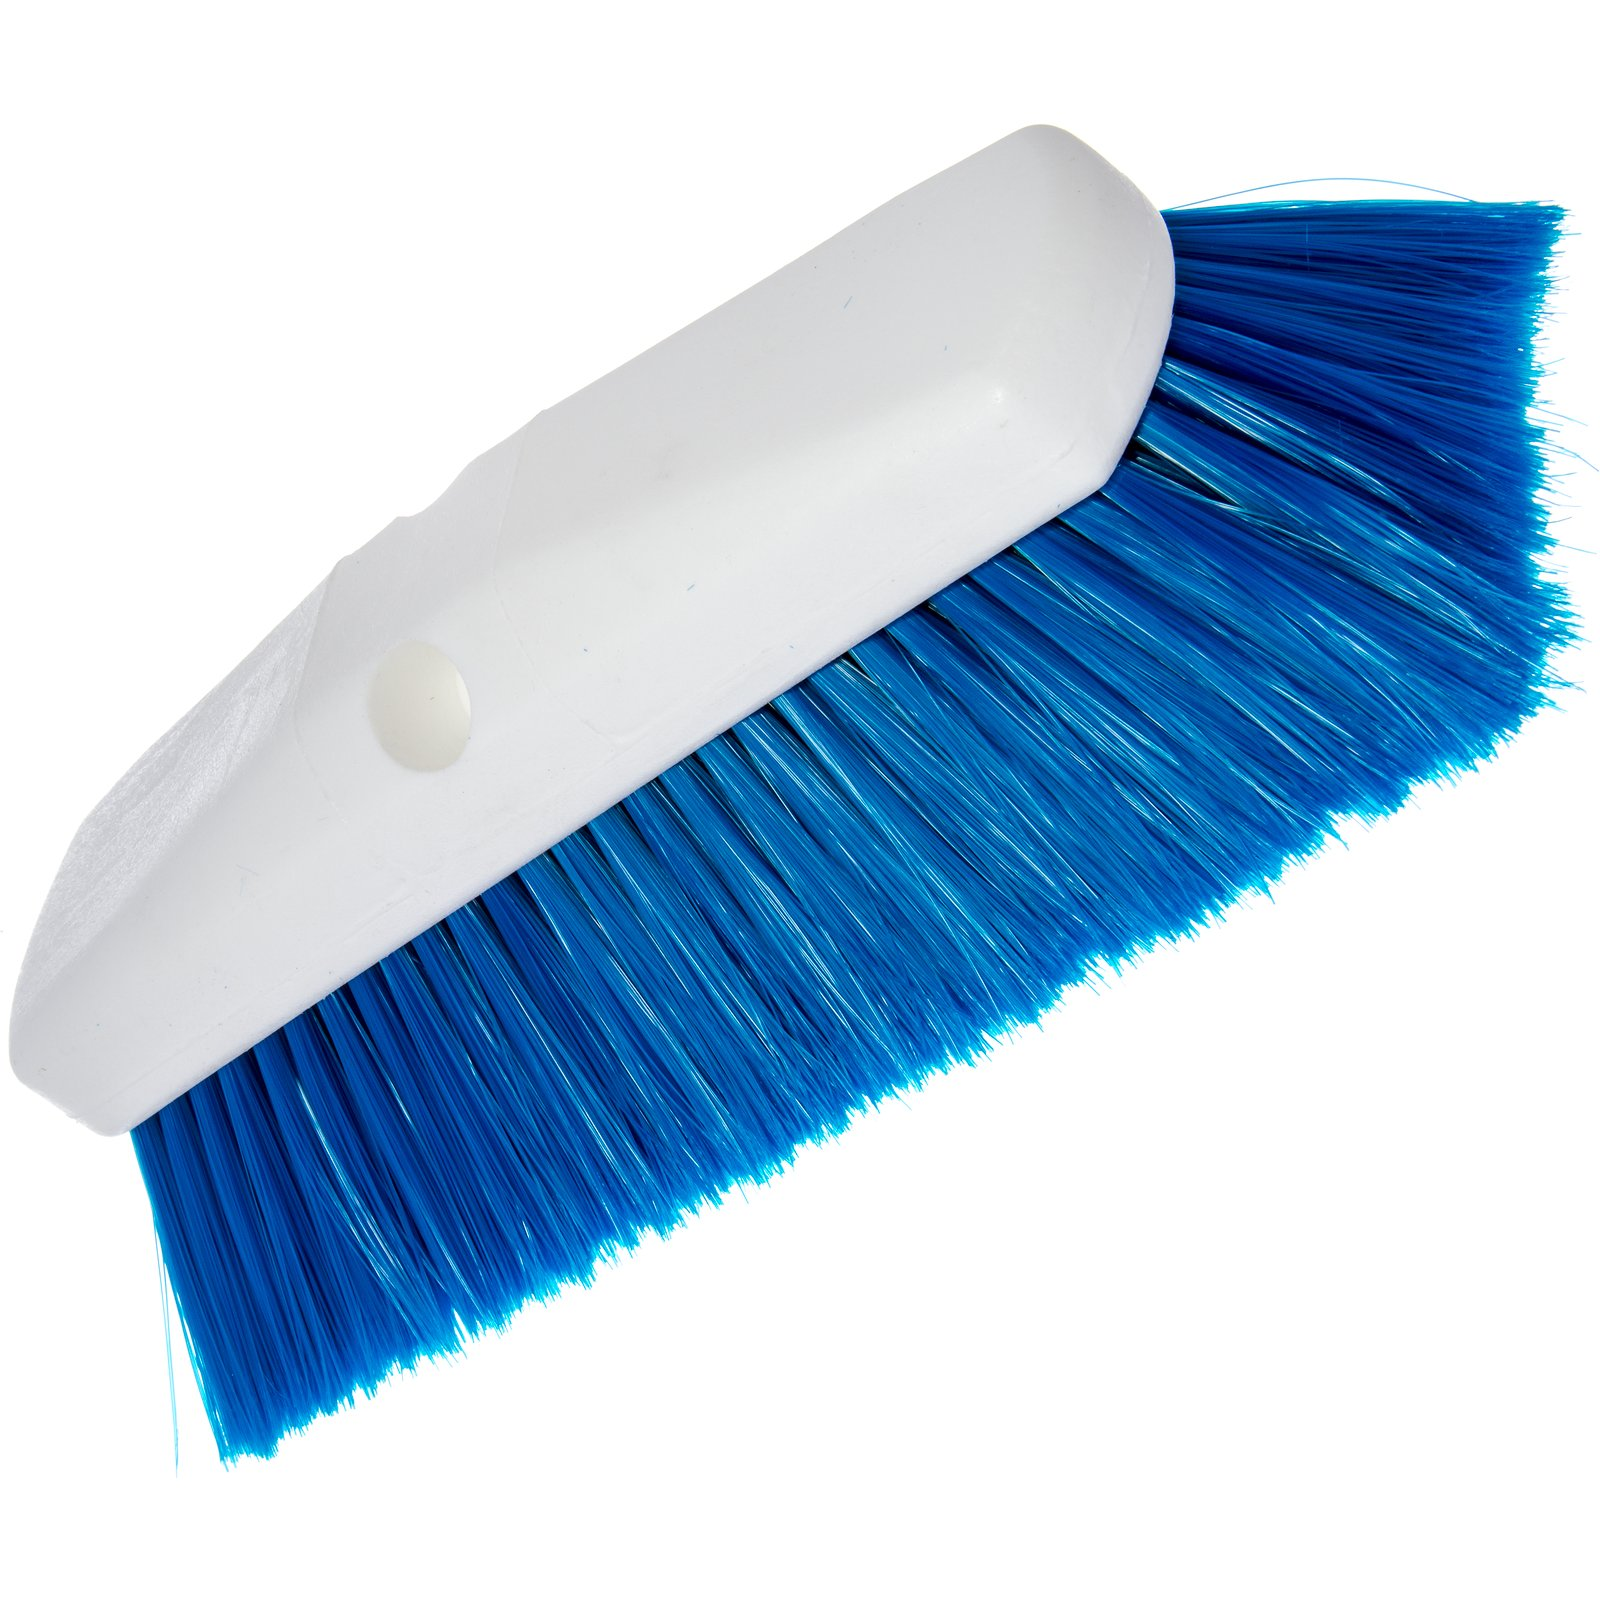 BRUSH WALL AND EQUIPMENT BLUE 10""